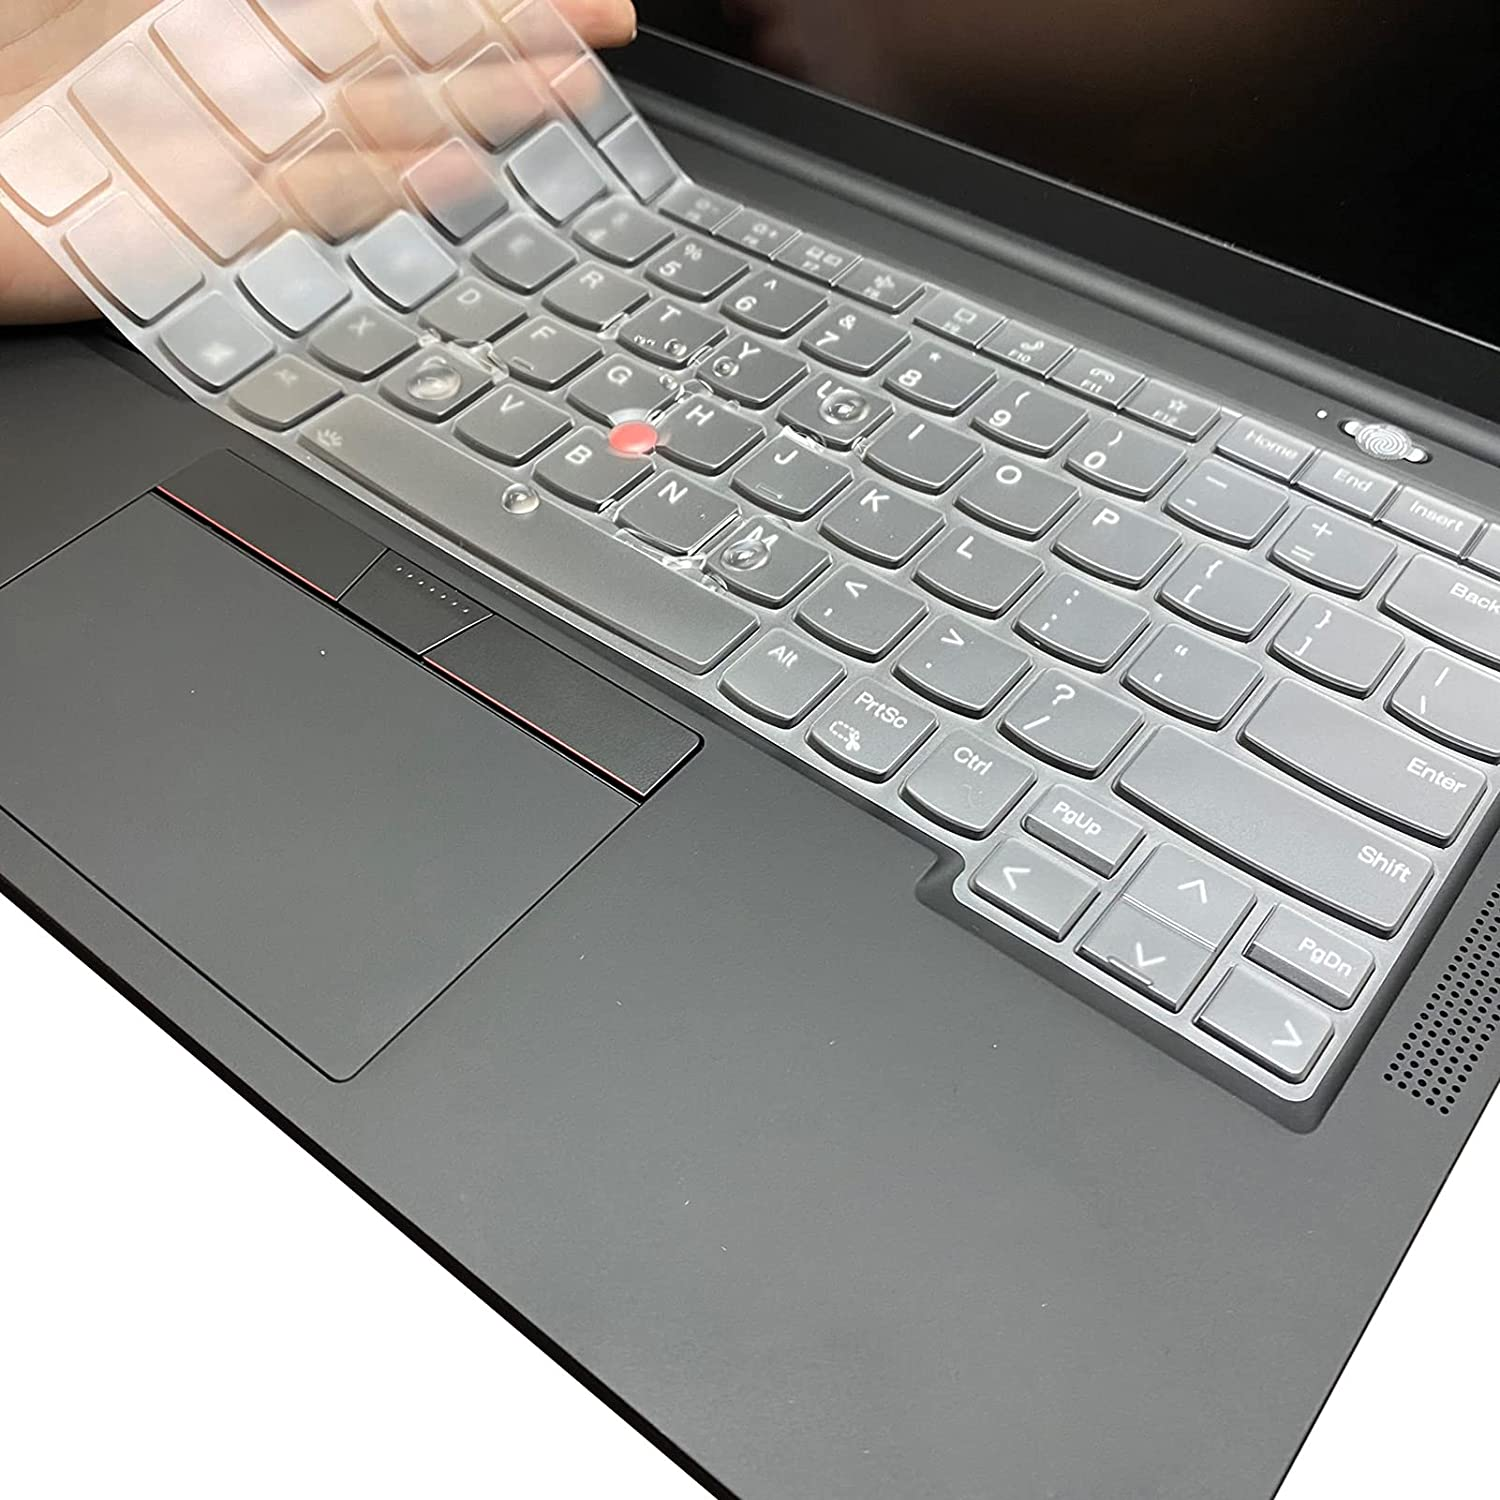 CaseBuy Keyboard Cover Compatible with 2021 Lenovo ThinkPad X1 Carbon 9th Gen 14